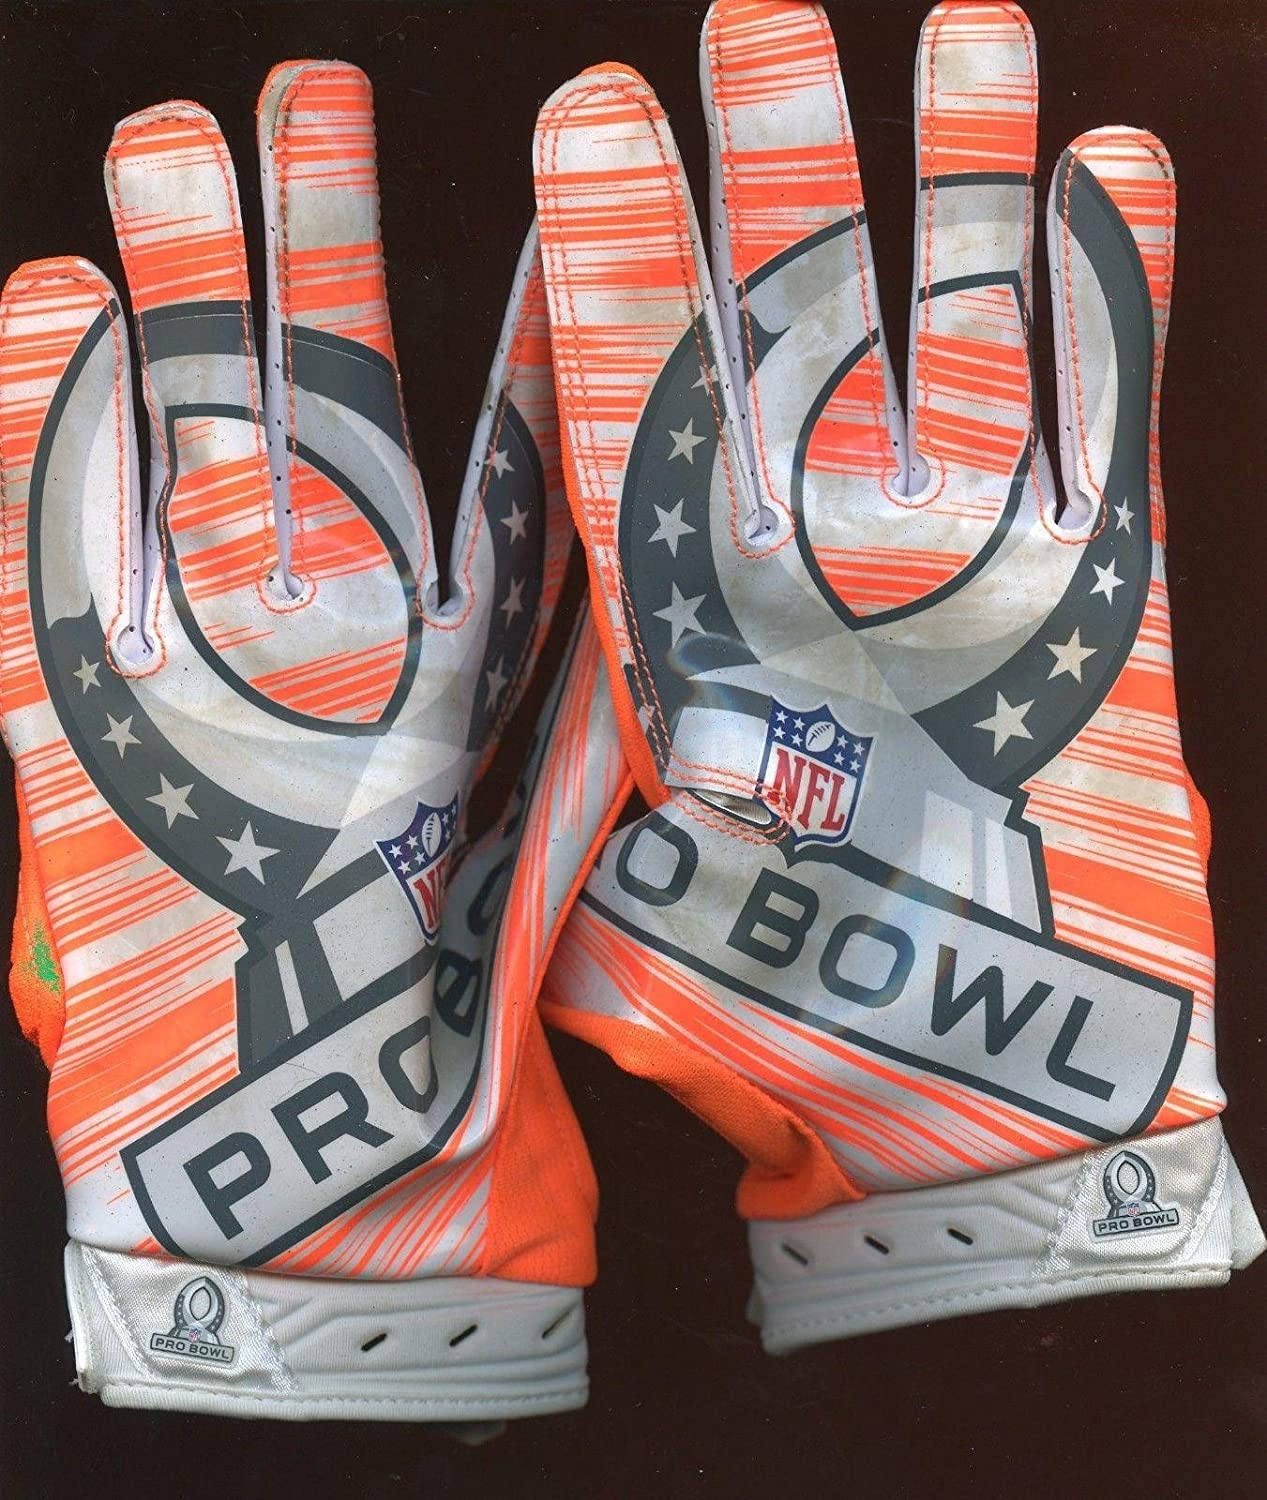 637fc30a4f6f Larry Fitzgerald  11 Pro Bowl Game Used Pair of Practice Gloves - NFL Game  Used Gloves at Amazon s Sports Collectibles Store